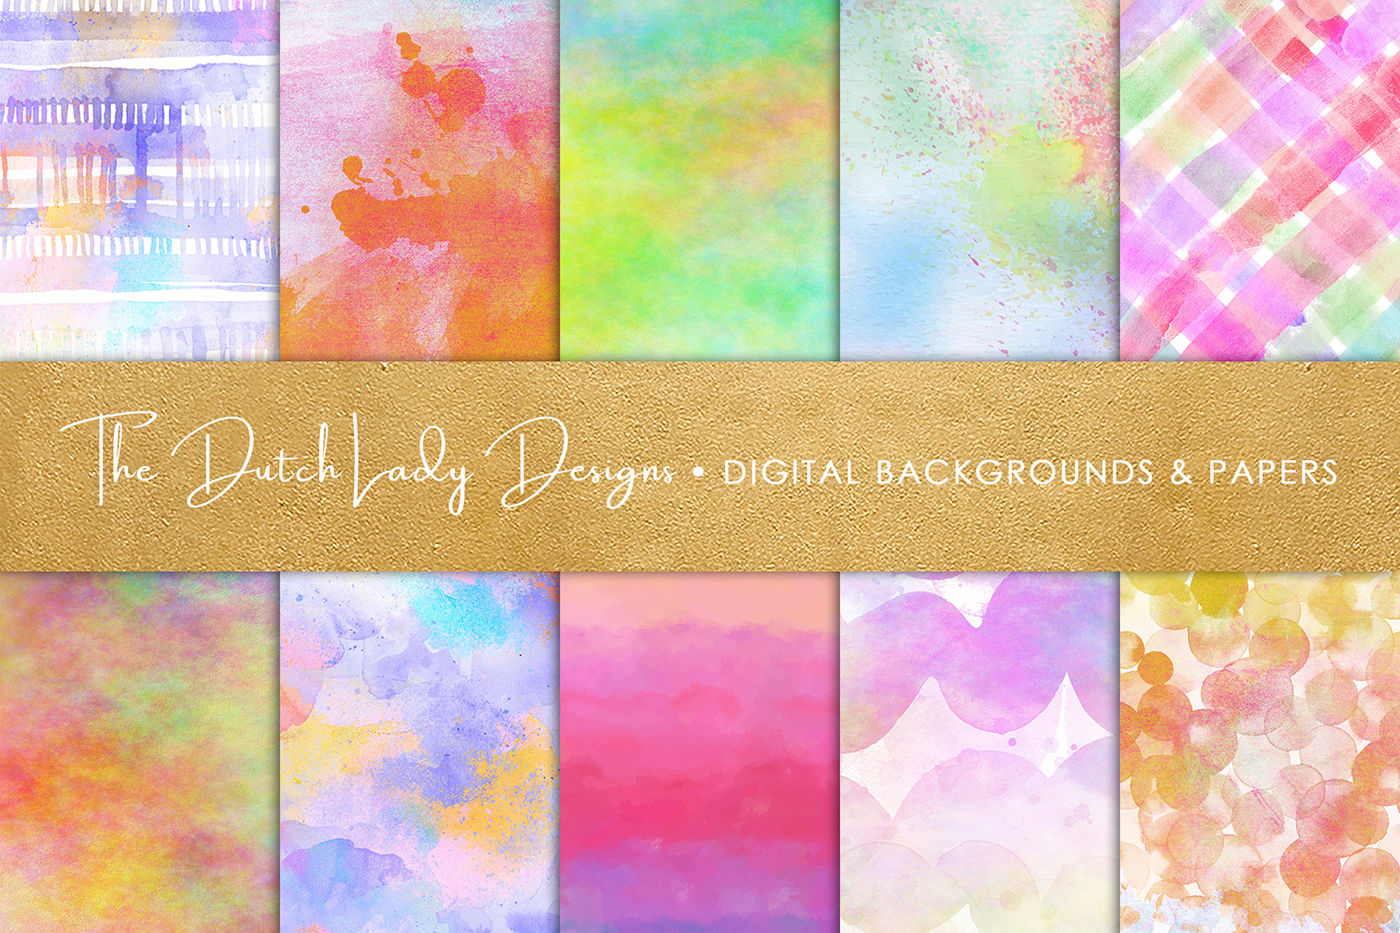 Watercolor Rainbow Scrapbook Papers By The Dutch Lady Designs